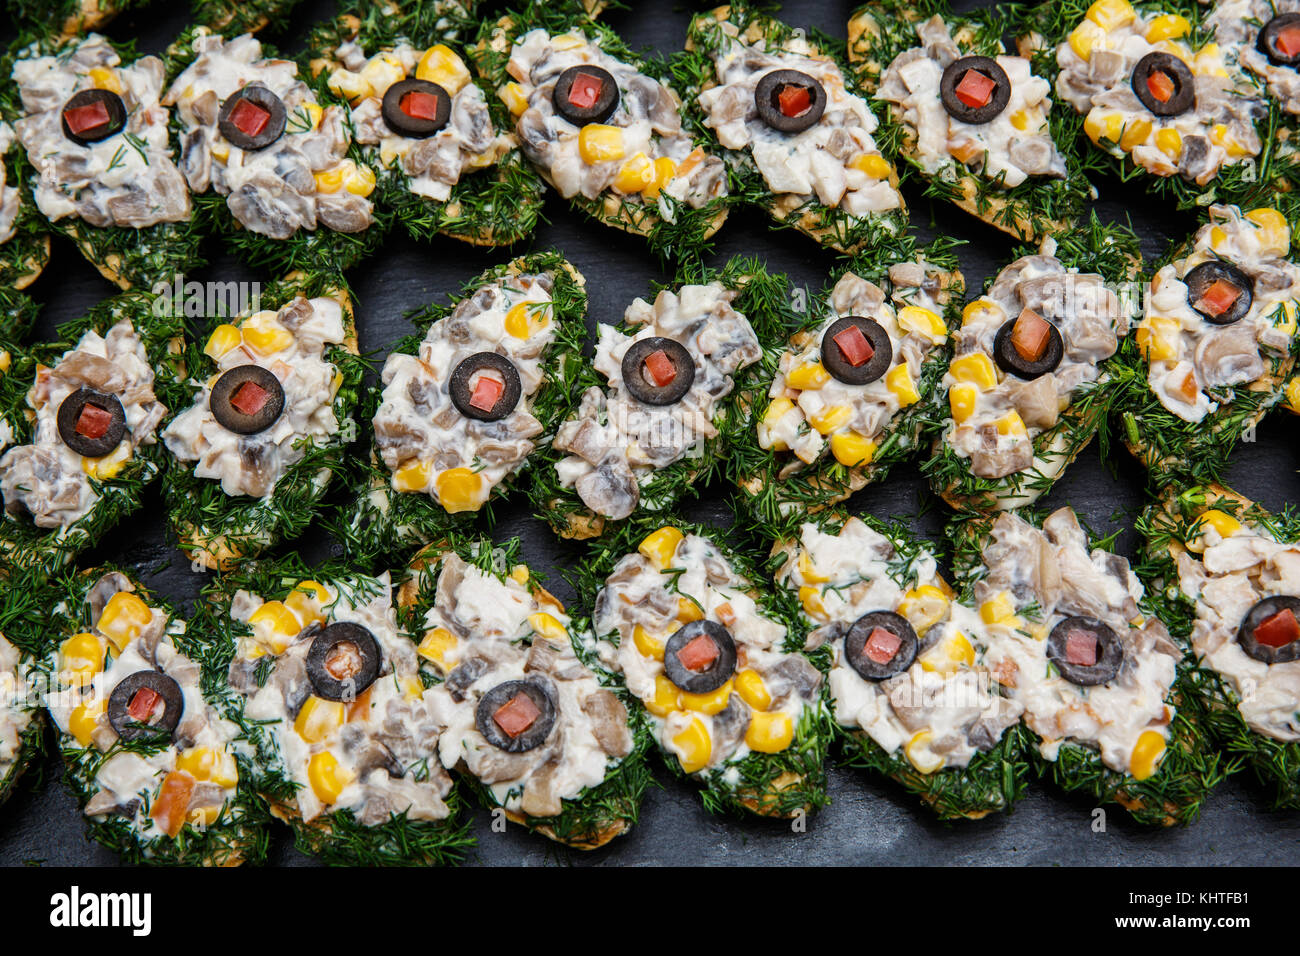 Selection of tasty bruschetta or canapes on toasted baguette with mushrooms, corn, fennel, olive, tomato, mayonnaise, - Stock Image